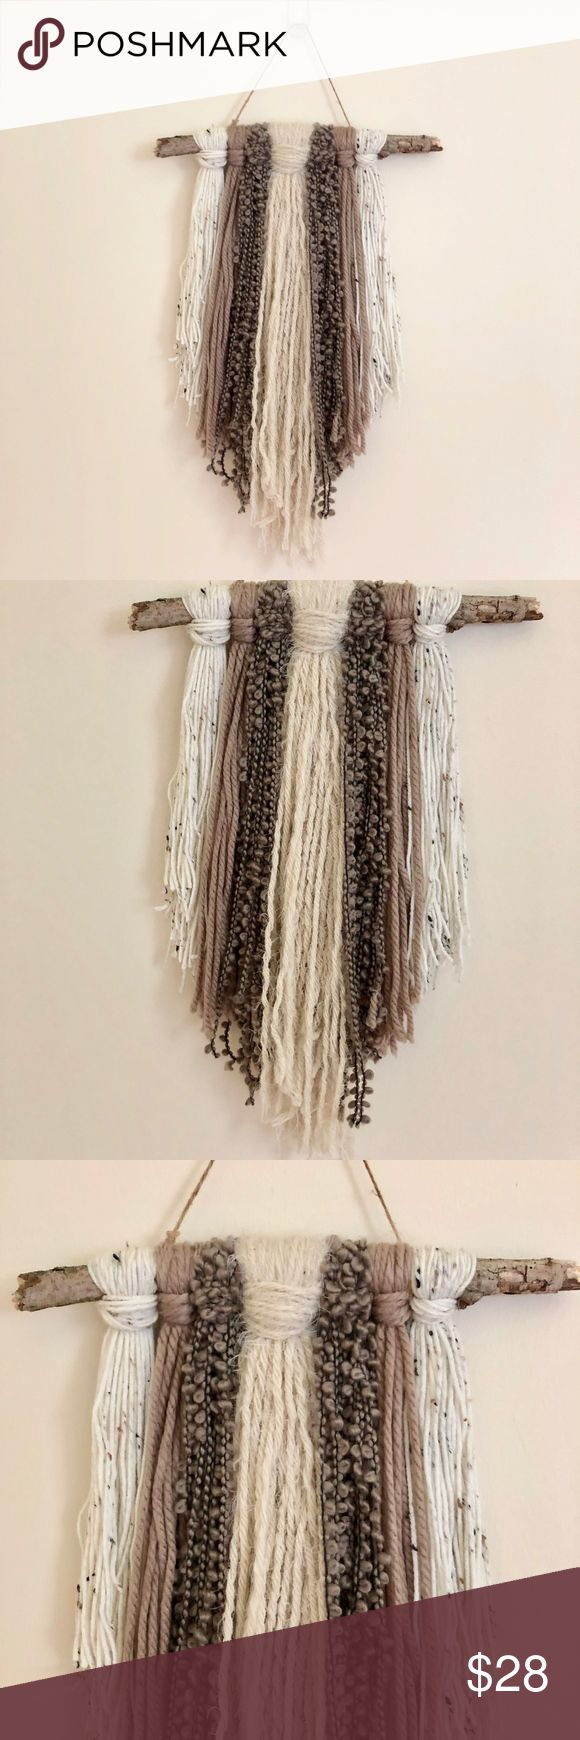 Bohemian Wall Hanger Bohemian, nature inspired wall hanger, is a straight branch...